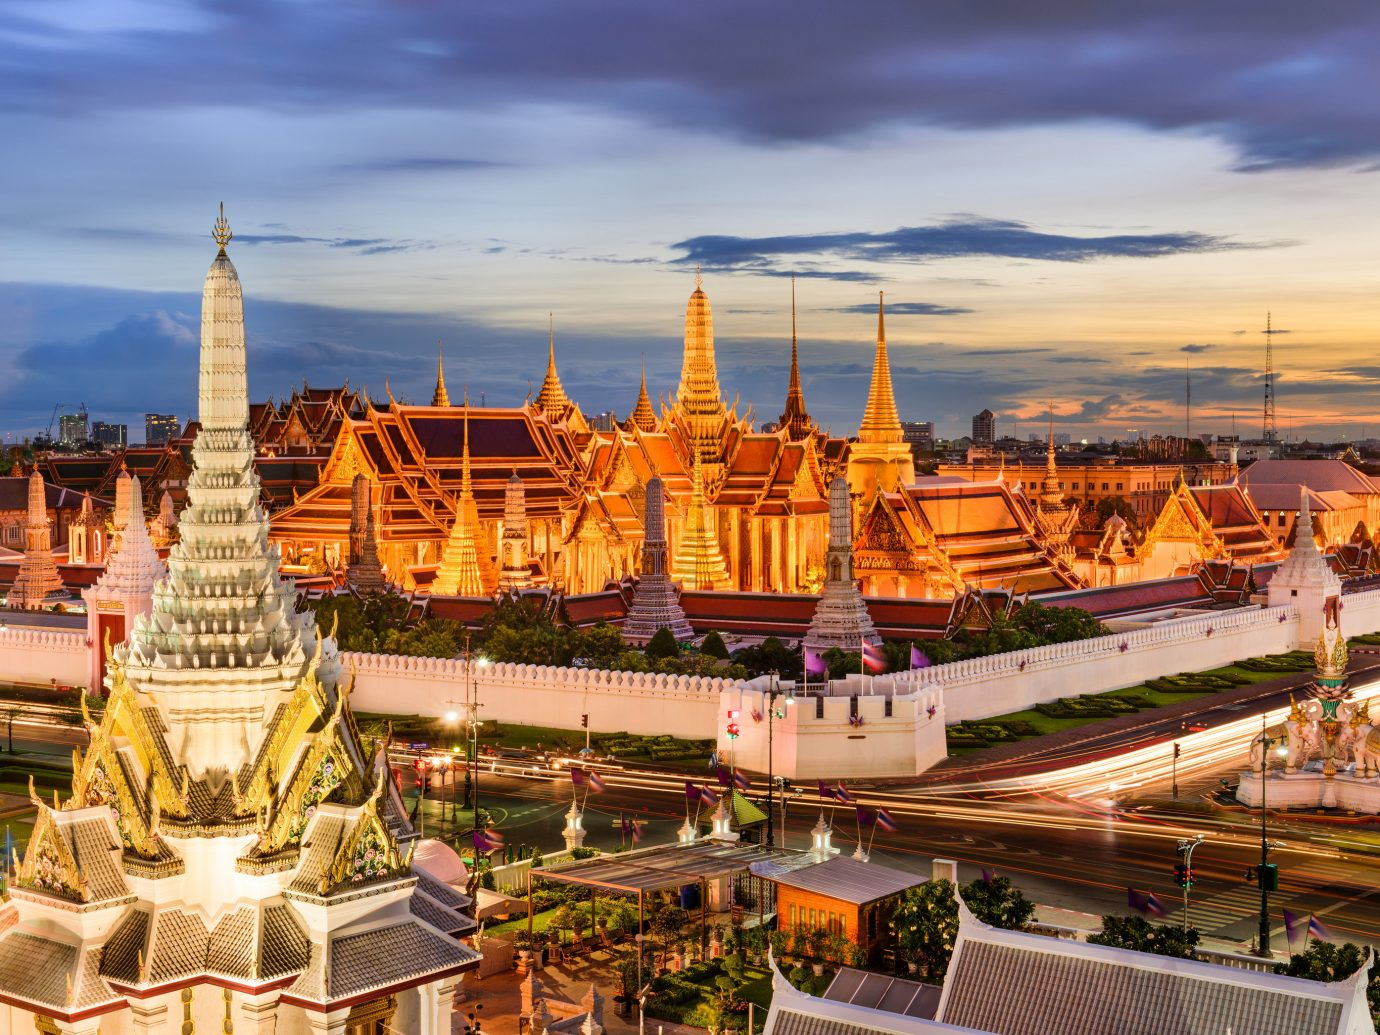 Hotels Jetsetter Guides sky outdoor landmark City human settlement cityscape tourism place of worship ancient history evening plaza palace temple travel